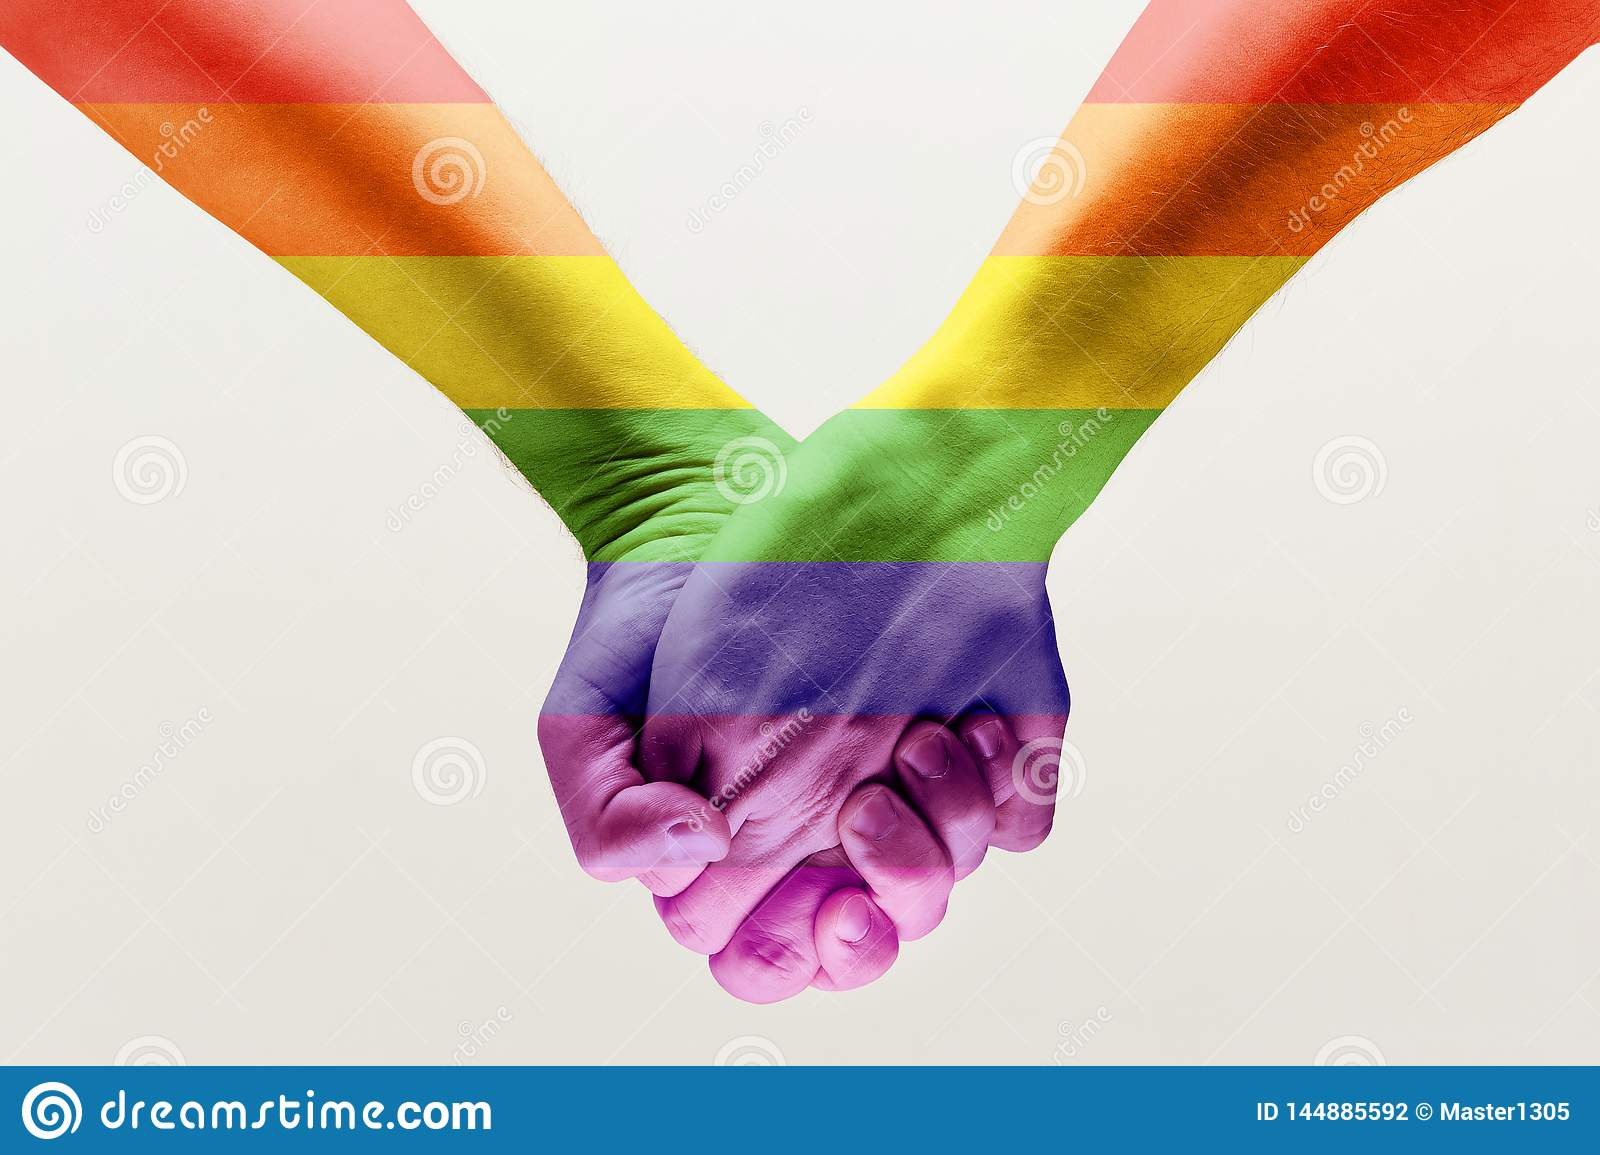 loseup of a gay couple holding hands, patterned as the rainbow flag